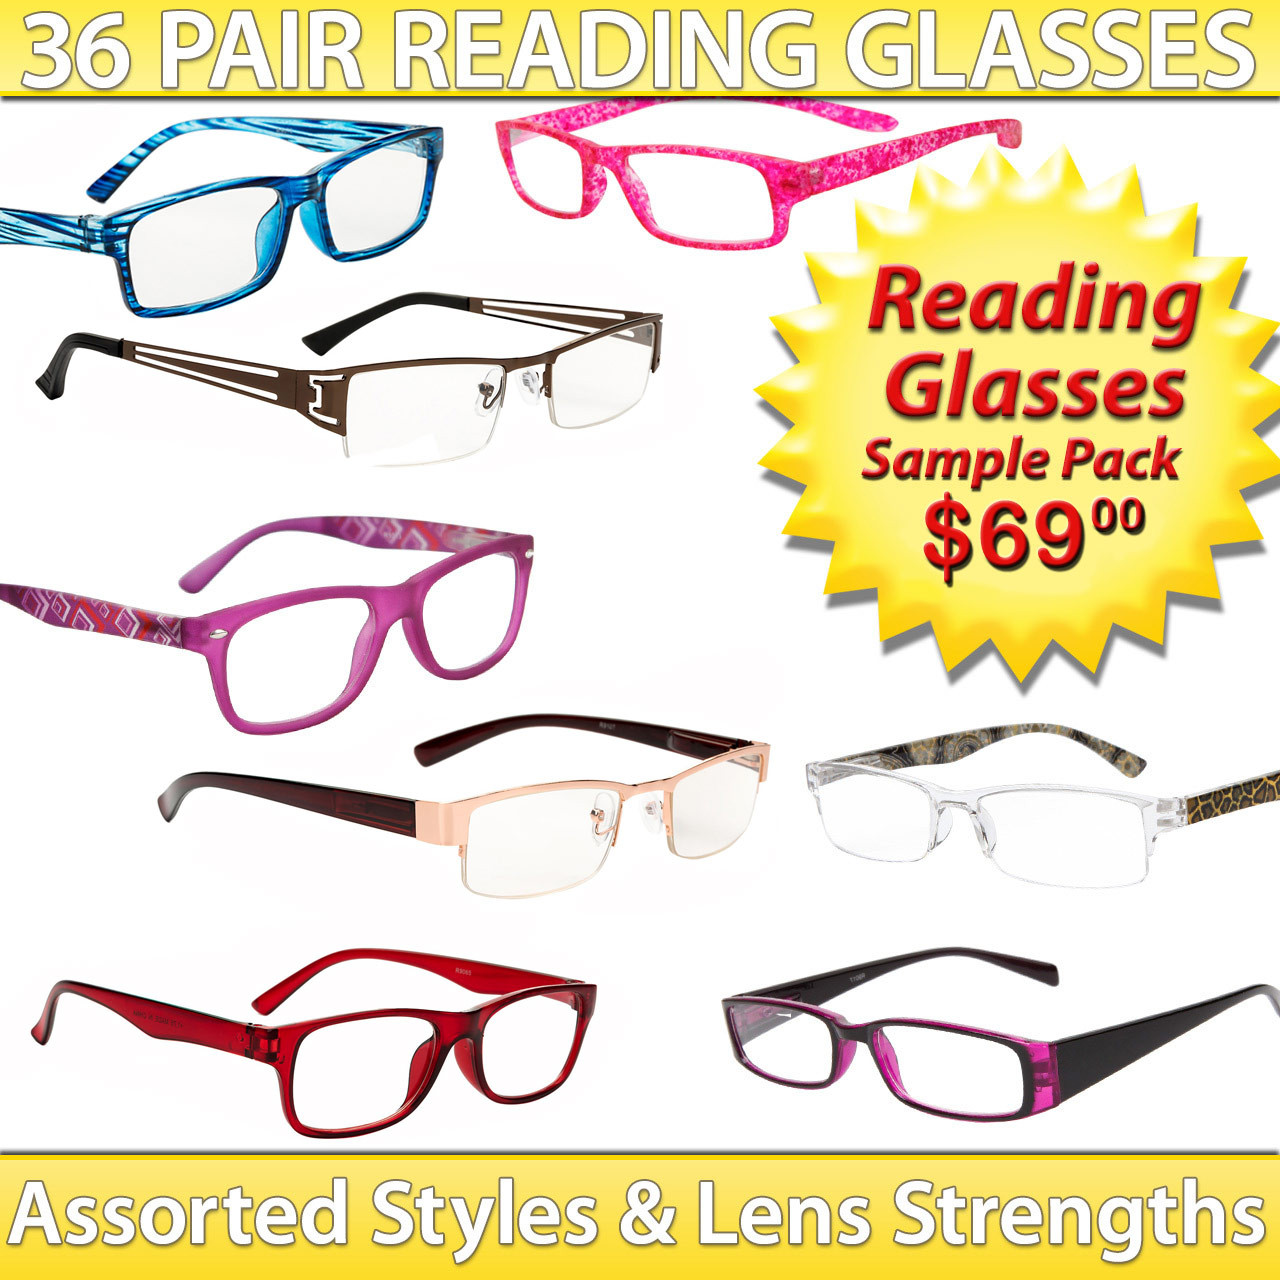 Reading Glasses Package Deal ~ SPRD2 (36 pcs.) Assorted Styles